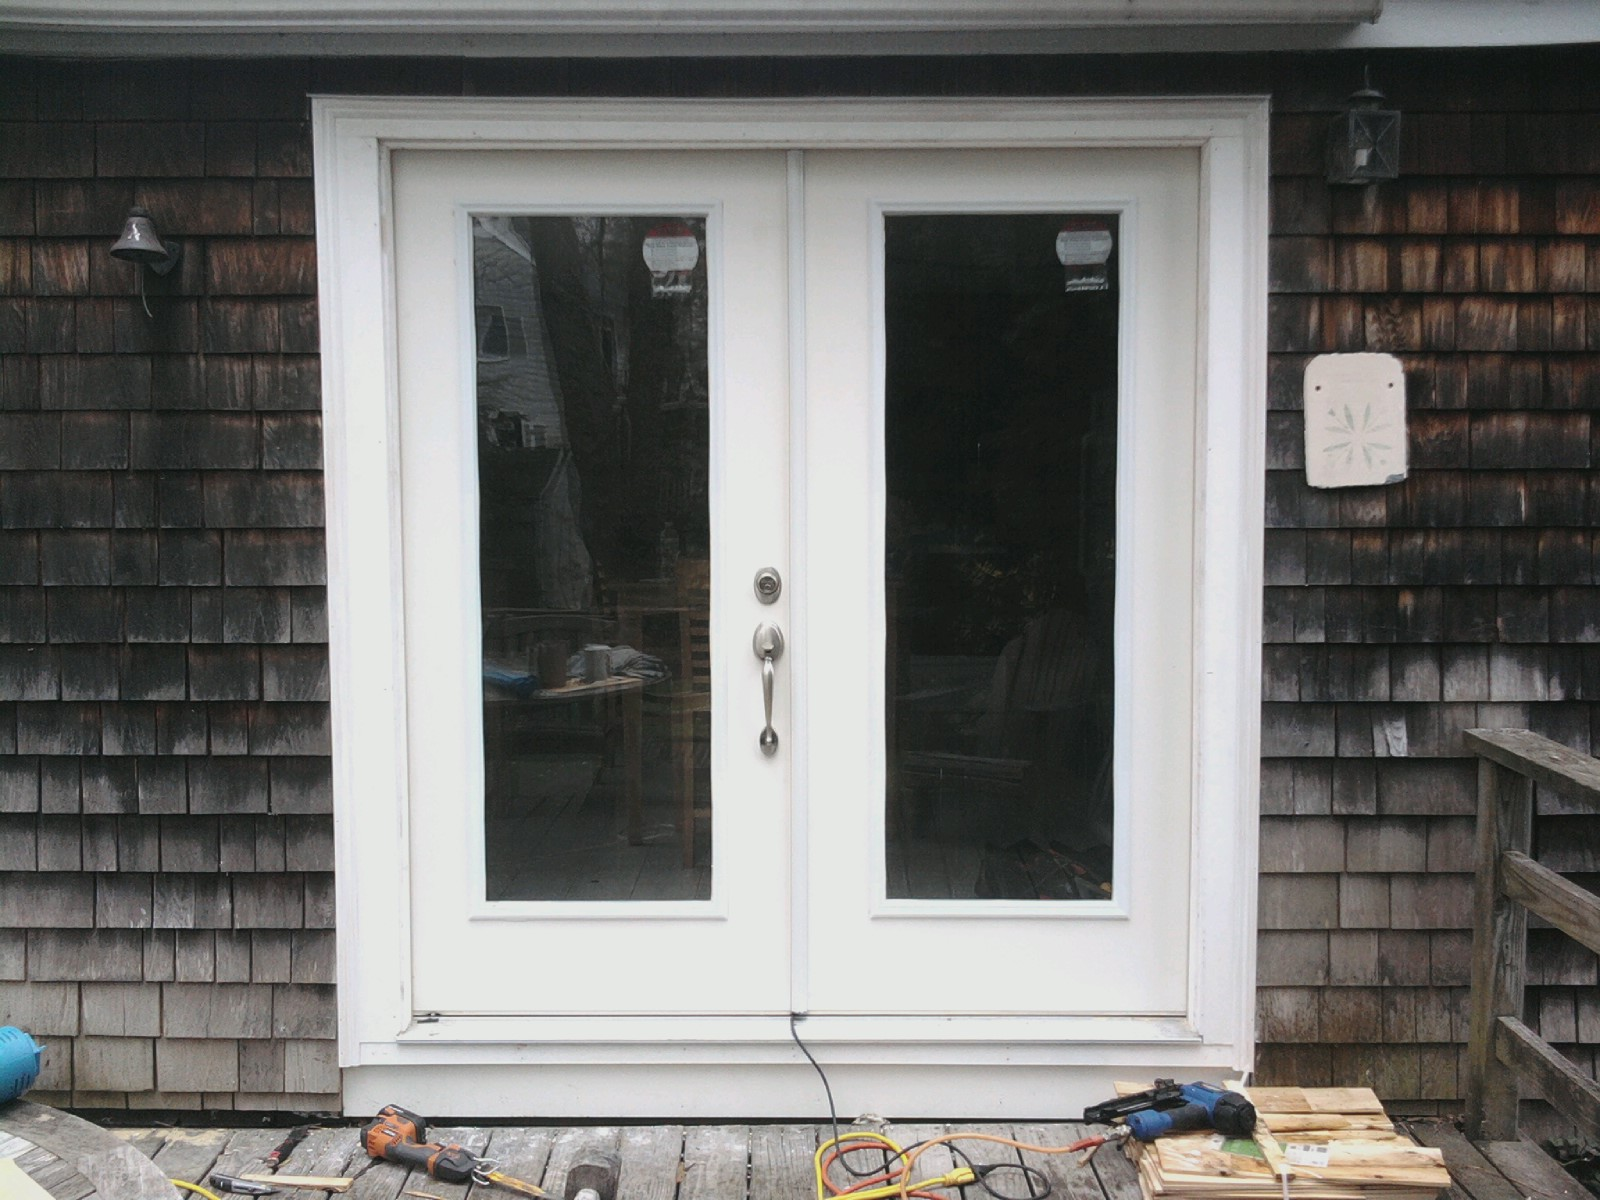 French doors exterior outswing stunning beyond words for French patio doors outswing home depot